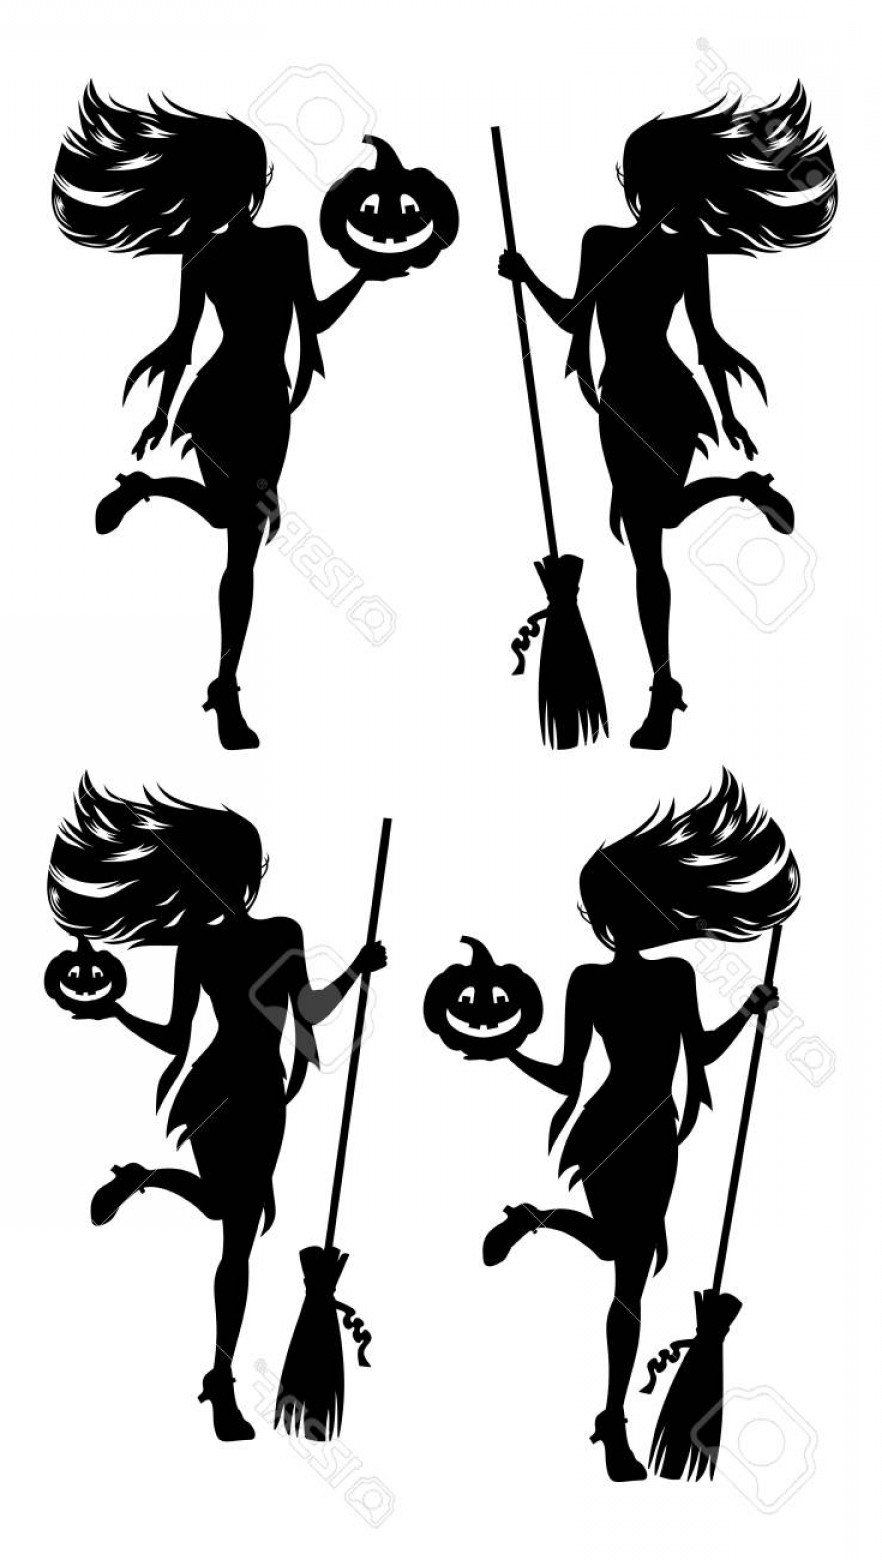 Witch Silhouette Vector: Photostock Vector Girl With A Broom In Witch Costume Halloween Witch Silhouette Vector Clip Art